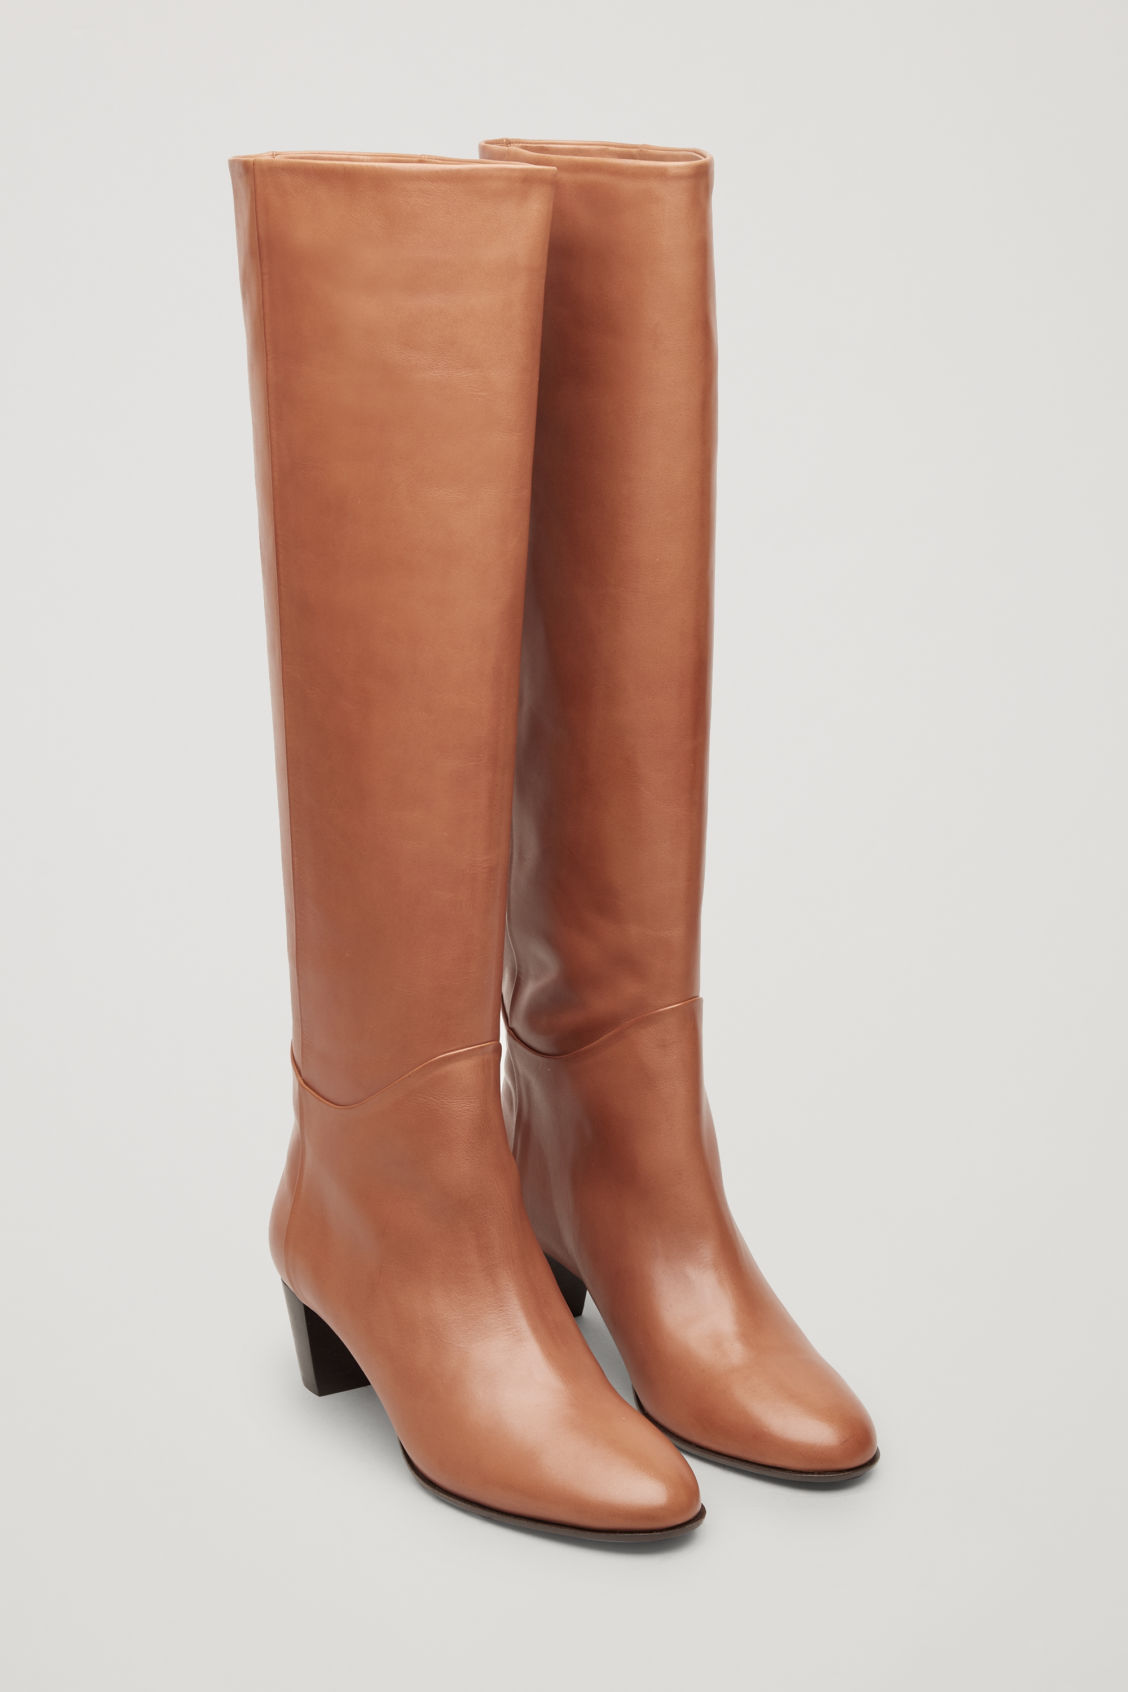 Knee-High Leather Boots in Beige from COS